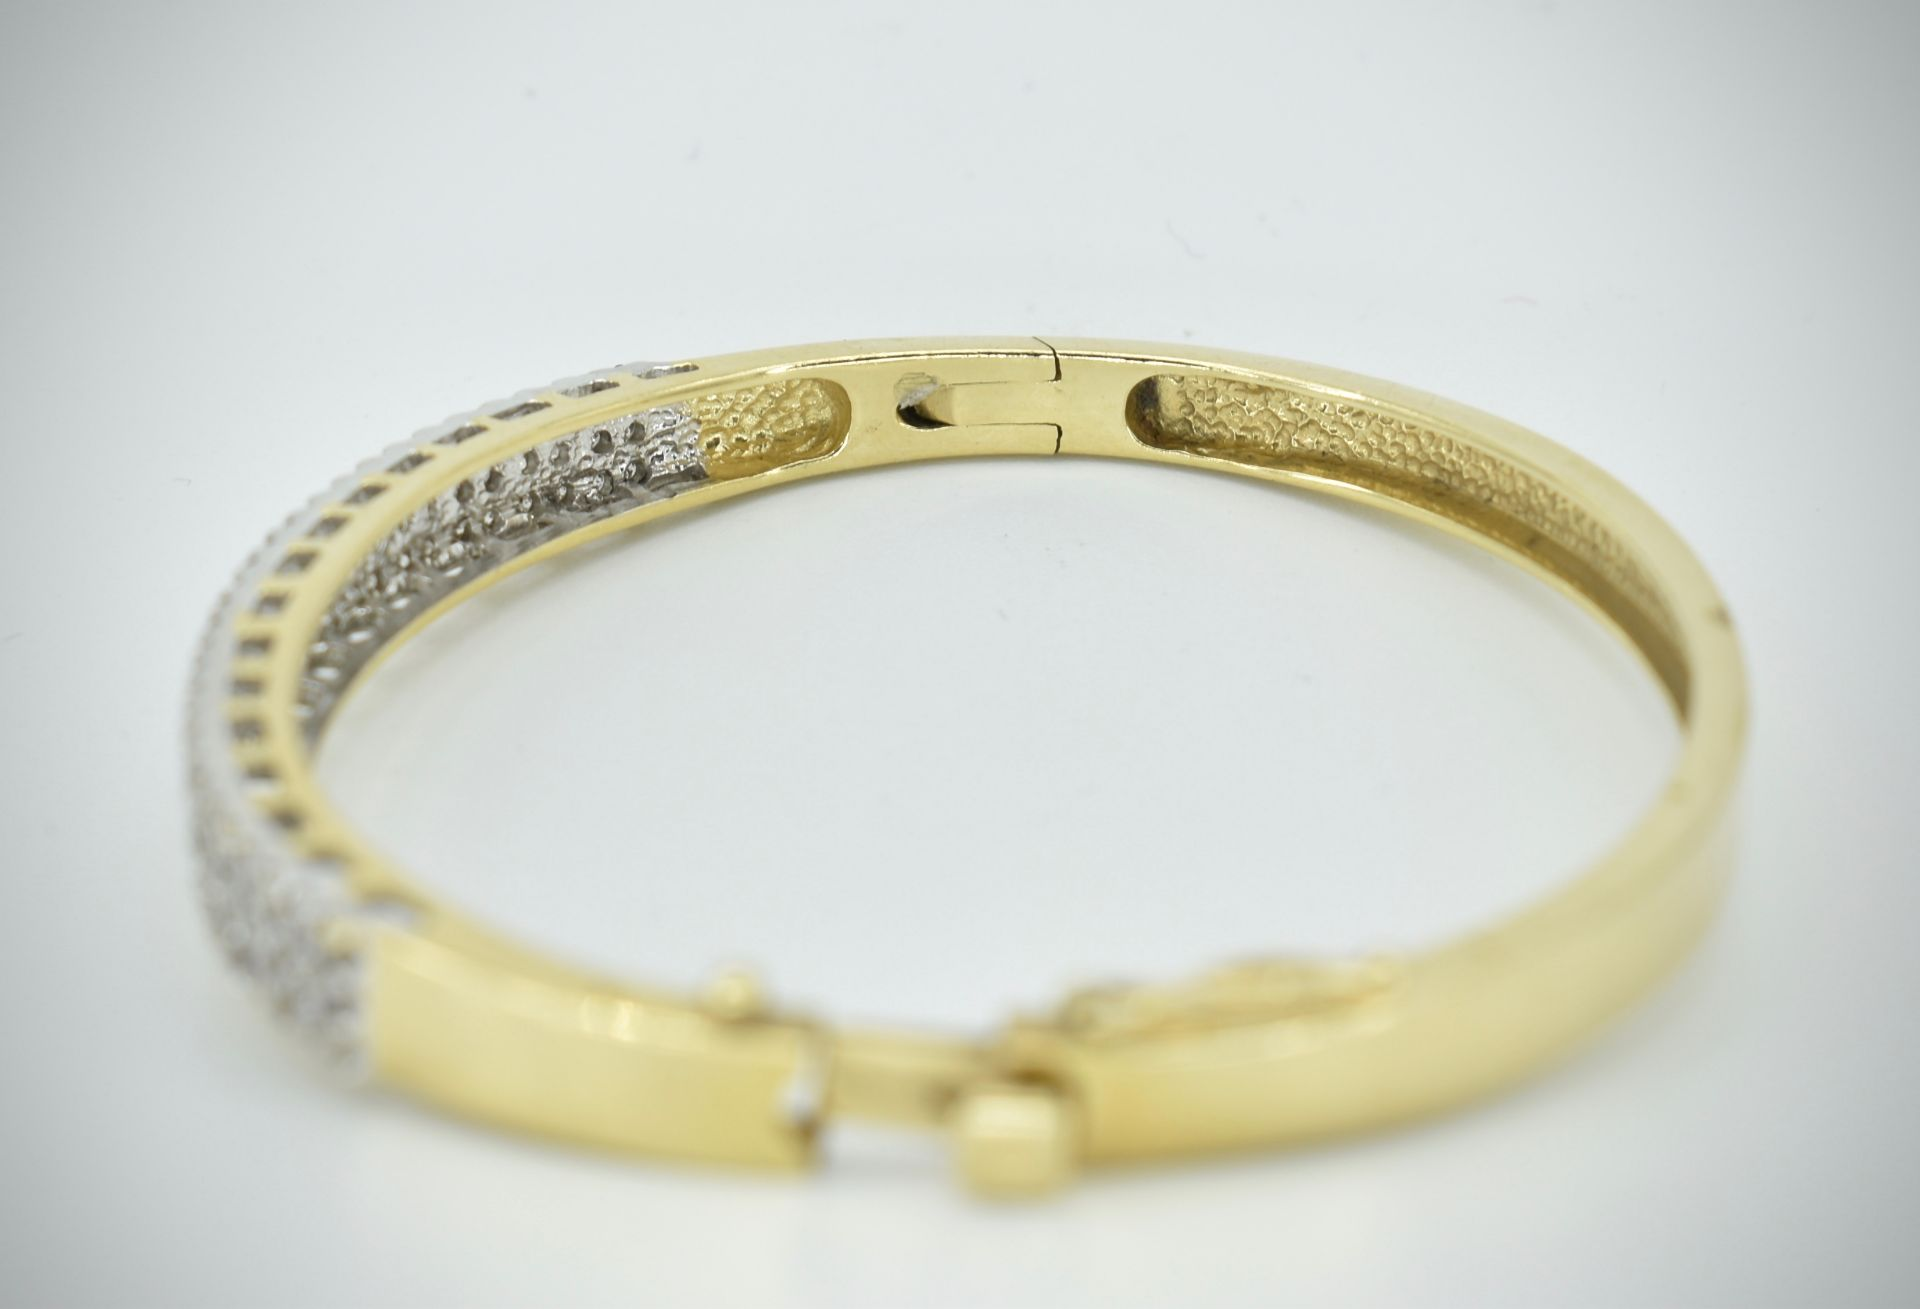 A 14ct Gold & Diamond Pave Fronted Bracelet - Bangle - Image 2 of 7